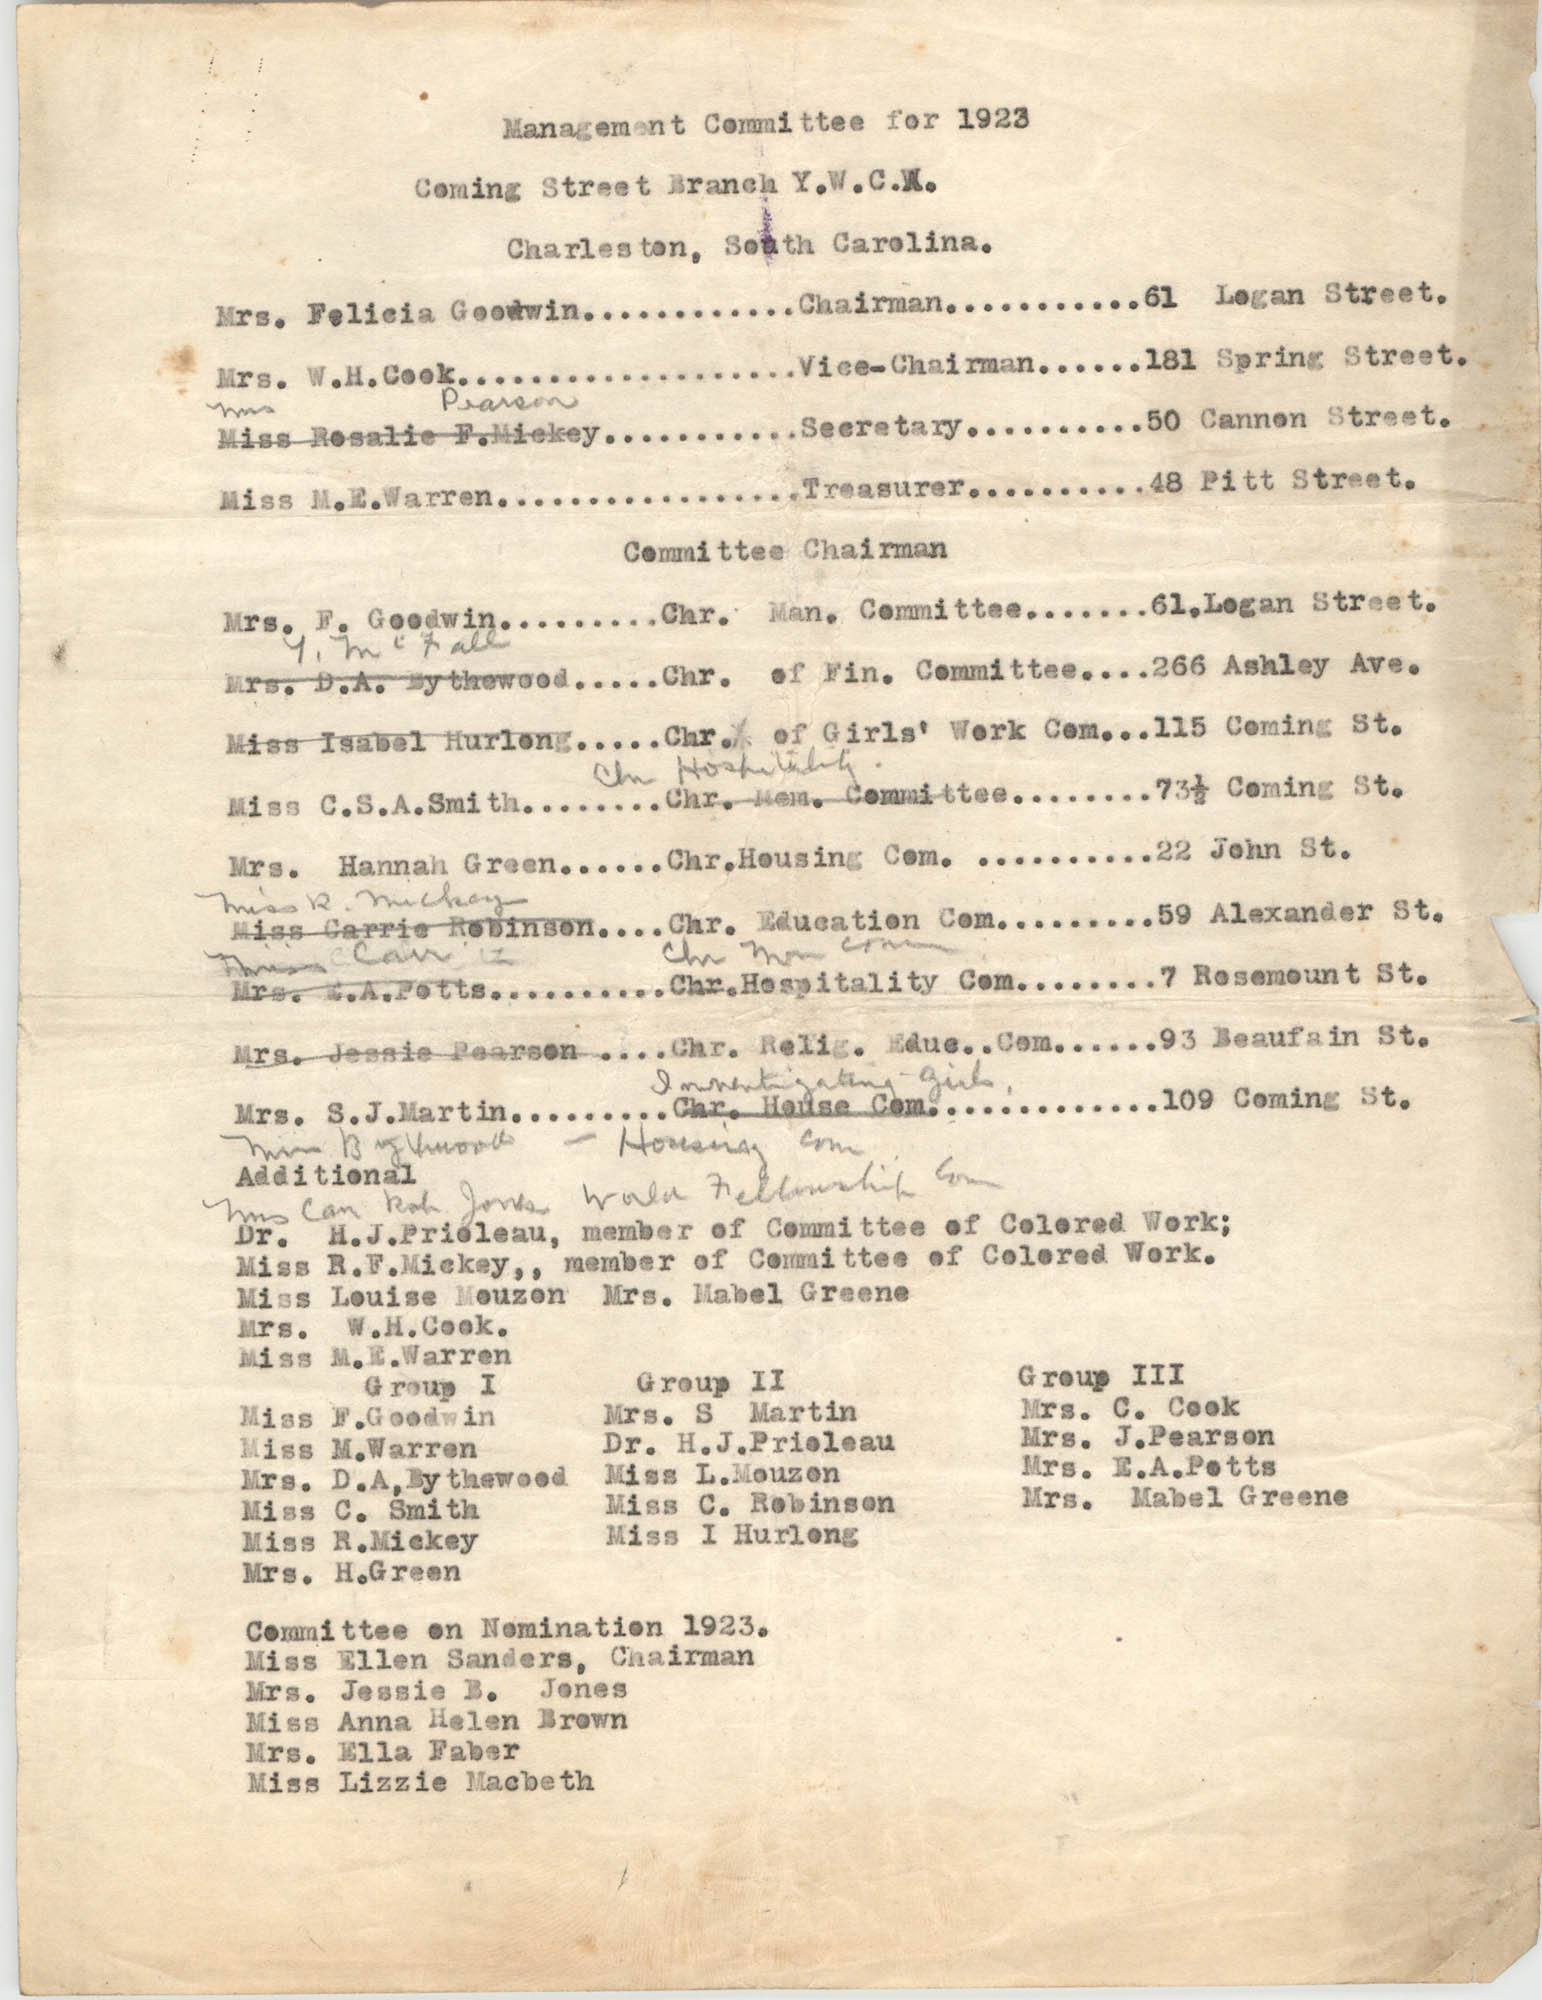 Committee of Management for 1923, Coming Street Y.W.C.A.